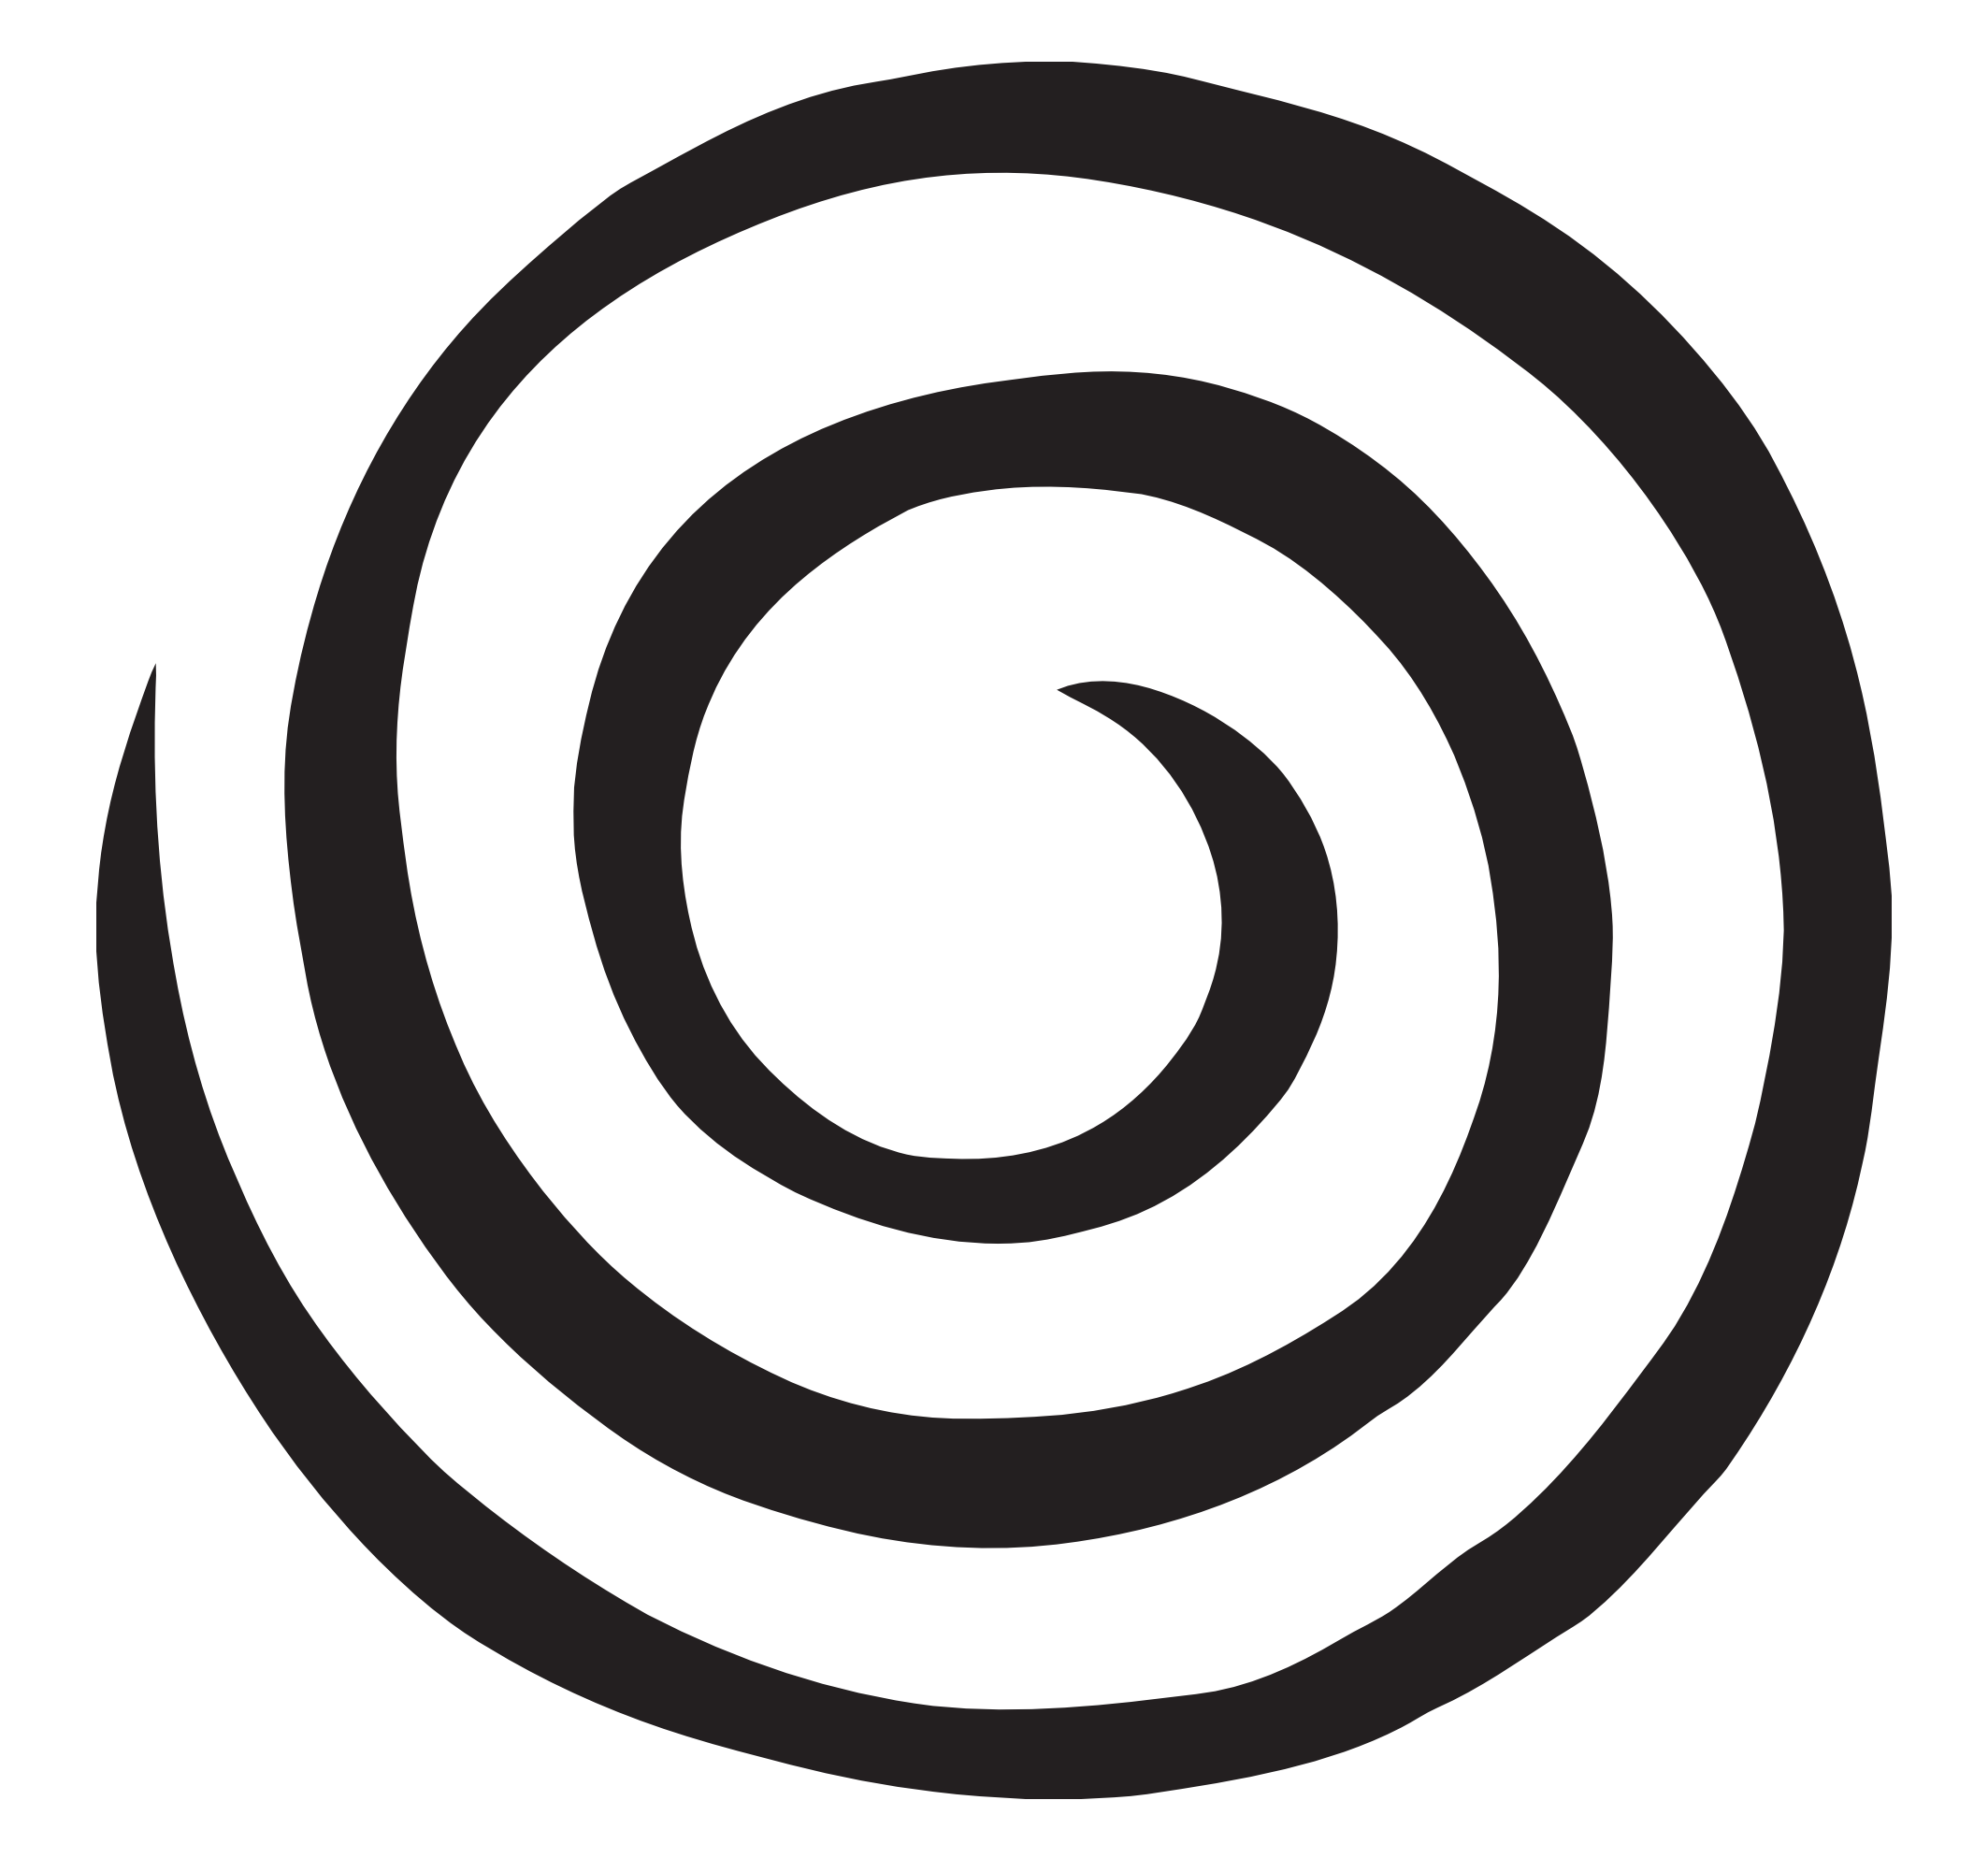 clipart library Transparent swirl. Circle png image pngpix